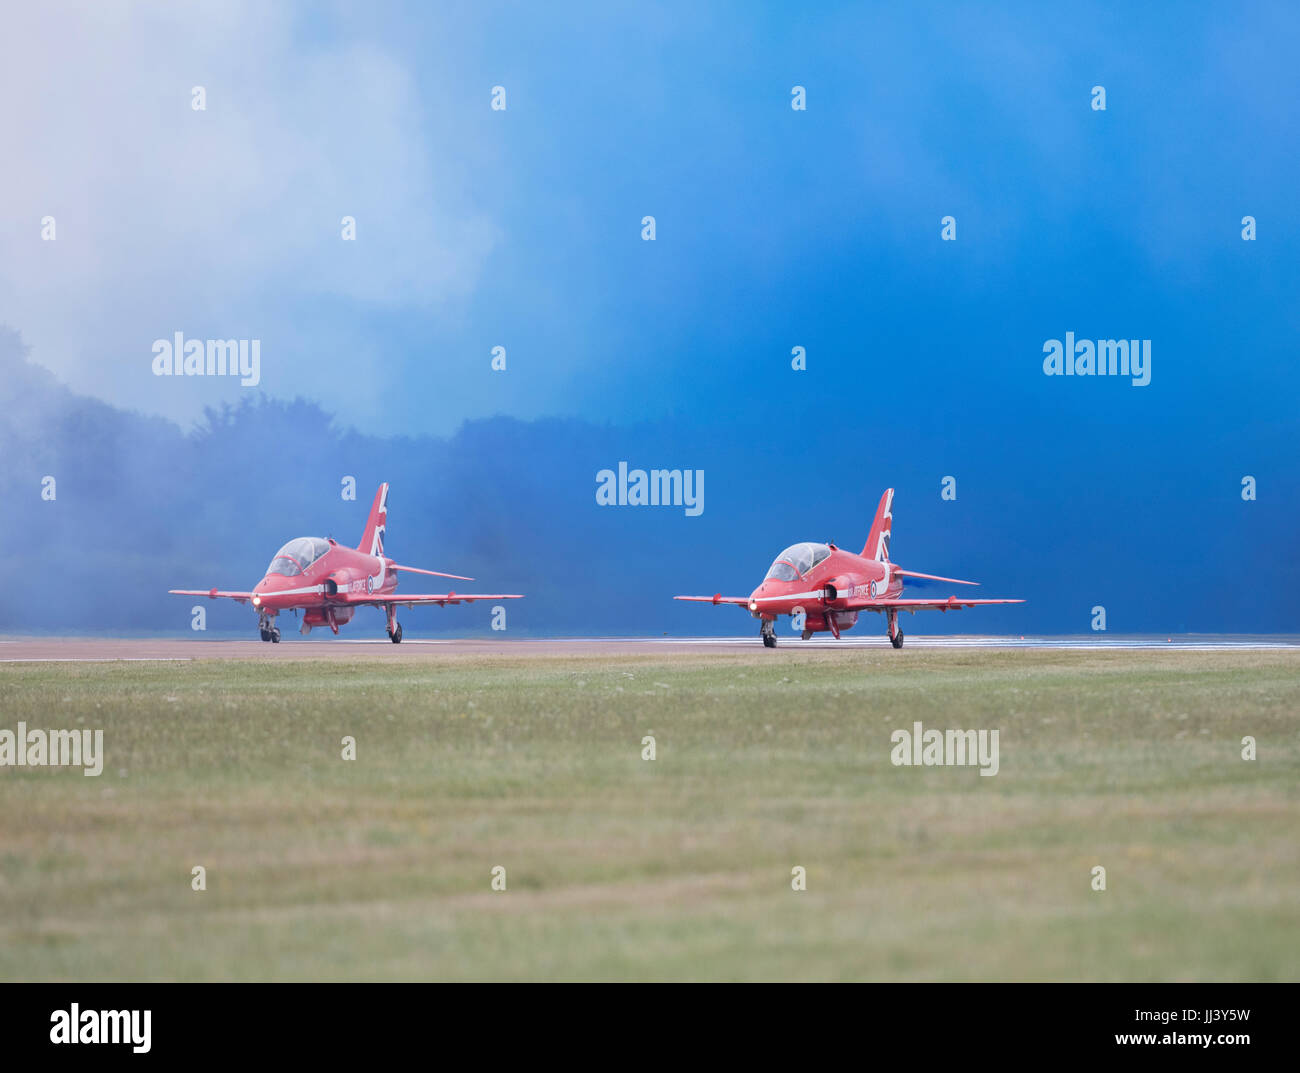 Air Show at RAF Fairford, Gloucestershire hosting the Royal International Air Tattoo, 2017.Red Arrows about to take Stock Photo